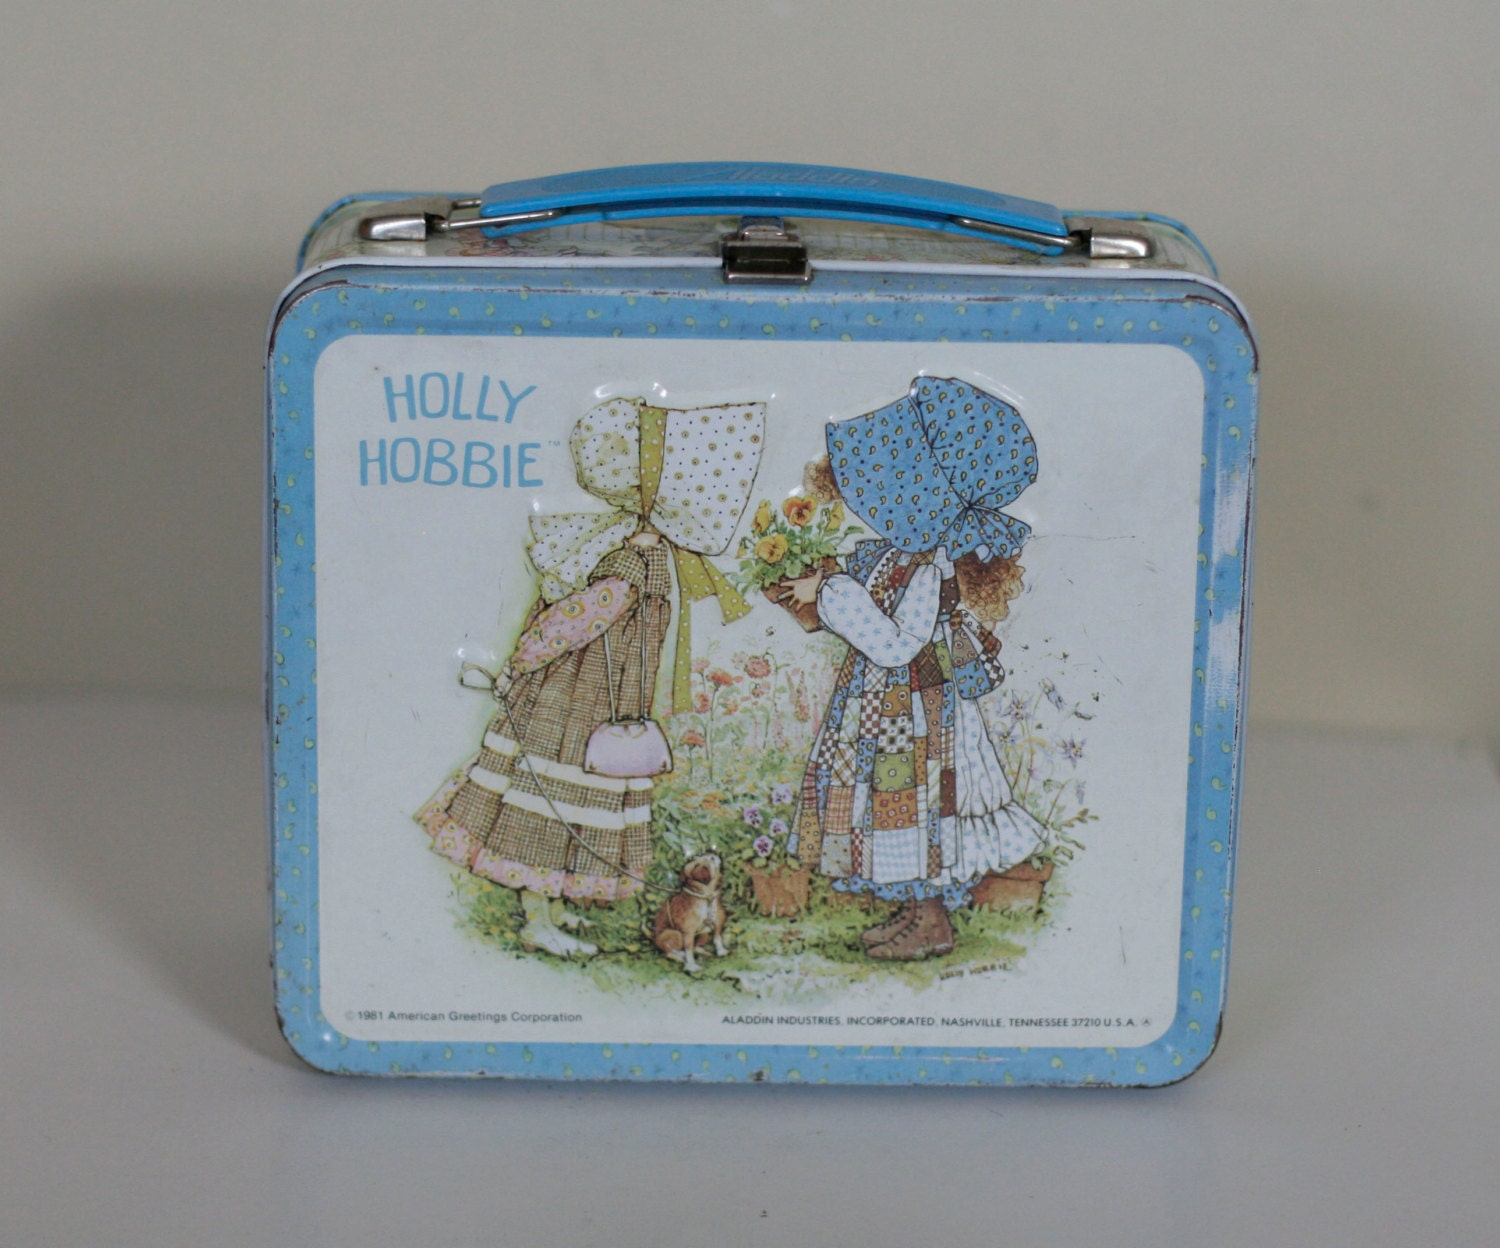 Vintage Holly Hobby Lunch Box 1981